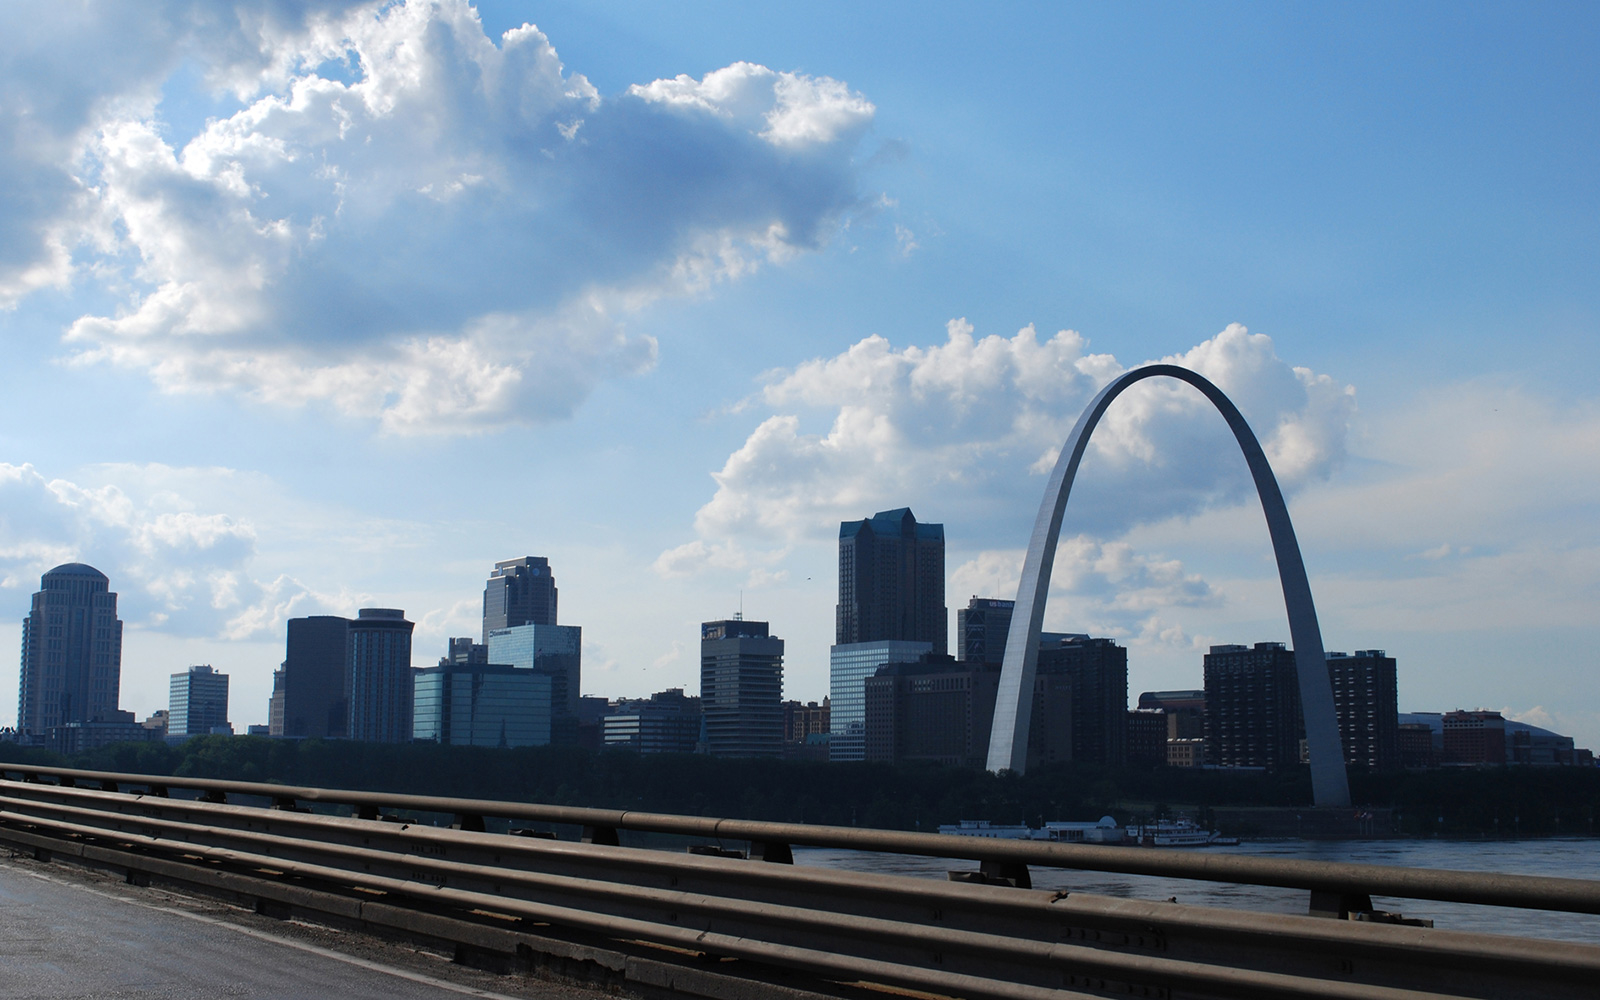 20. St. Louis, Missouri